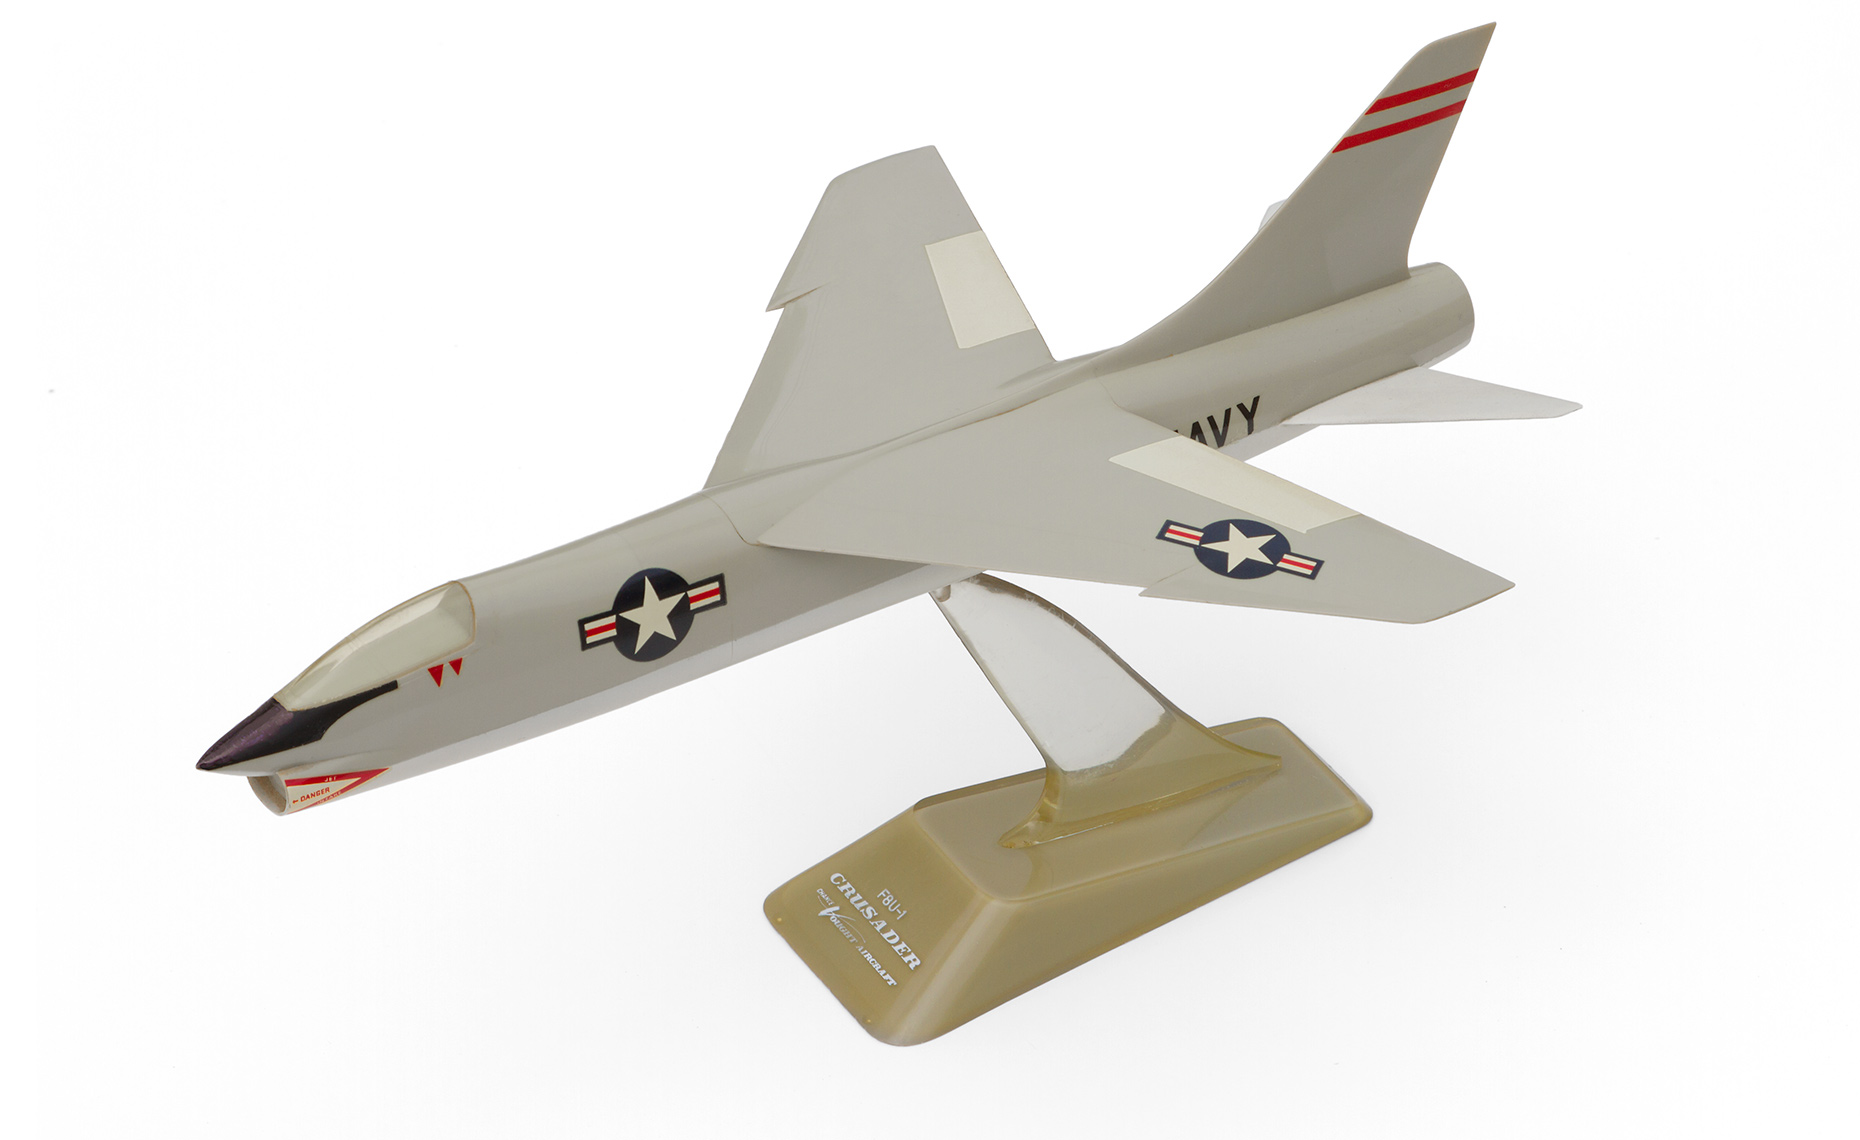 Topping Models Chance Vought F8U-1 Crusader